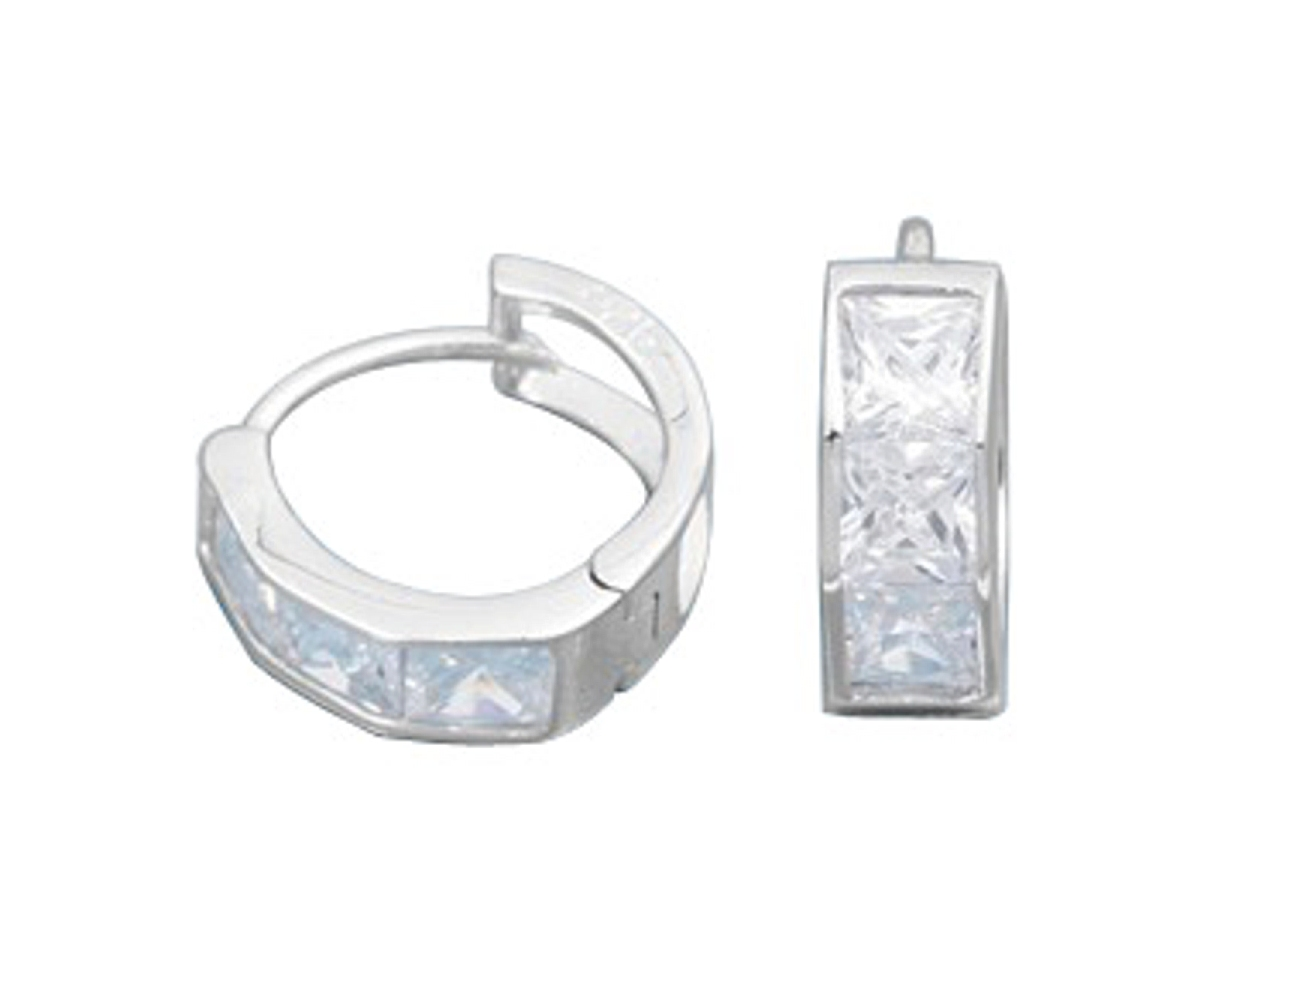 14mm Diameter Three Square Cubic Zirconia Stone Huggie Hoop Earrings